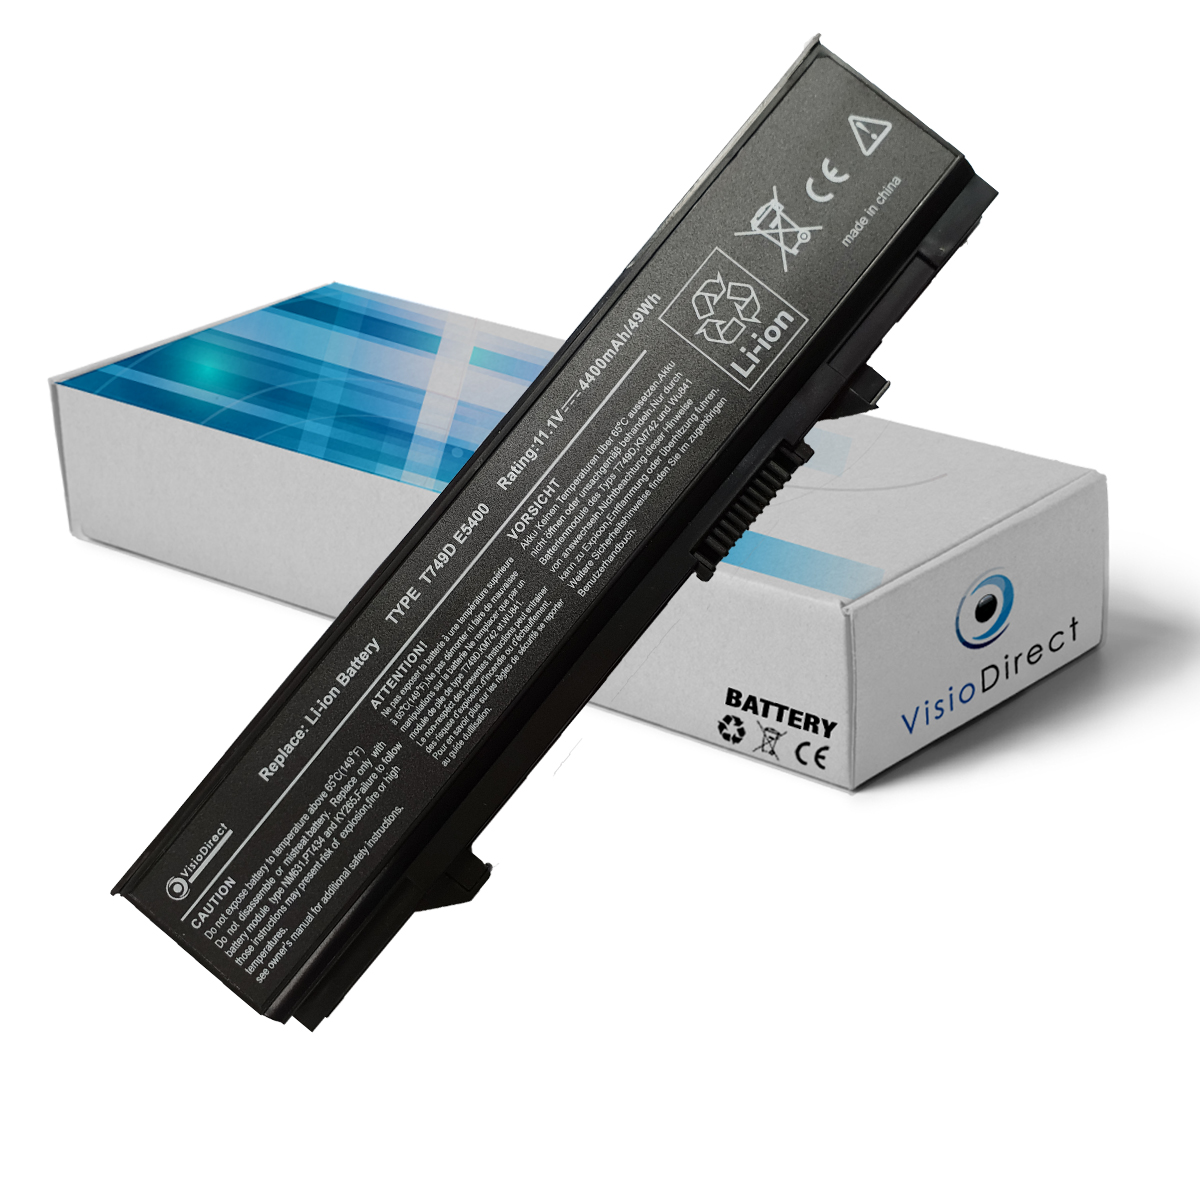 Batterie type WU843 11.1V 4400...